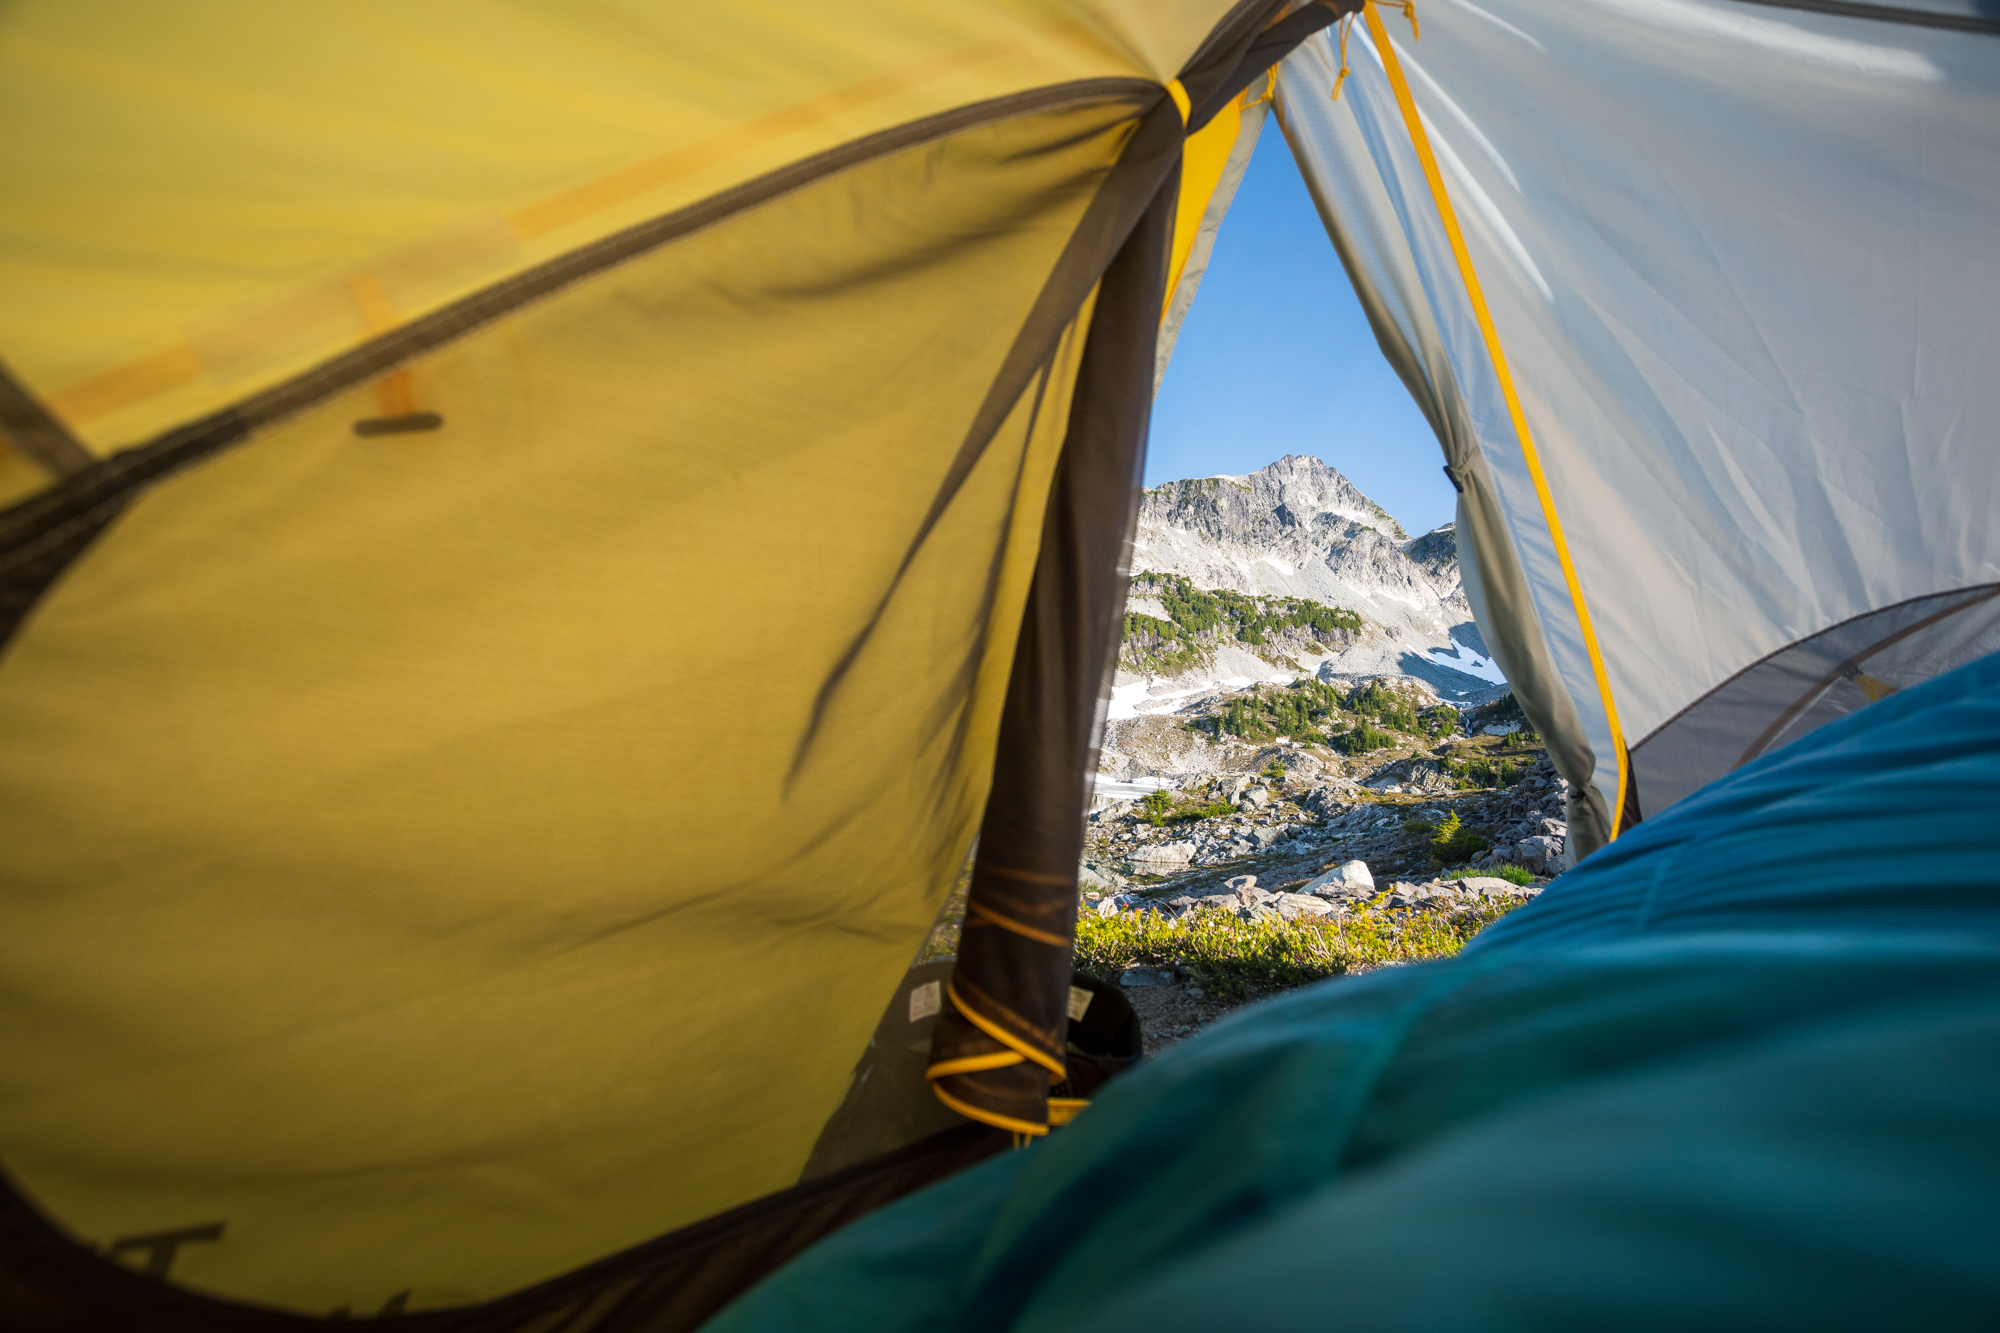 Never a bad time to look out your tent door and see this view.